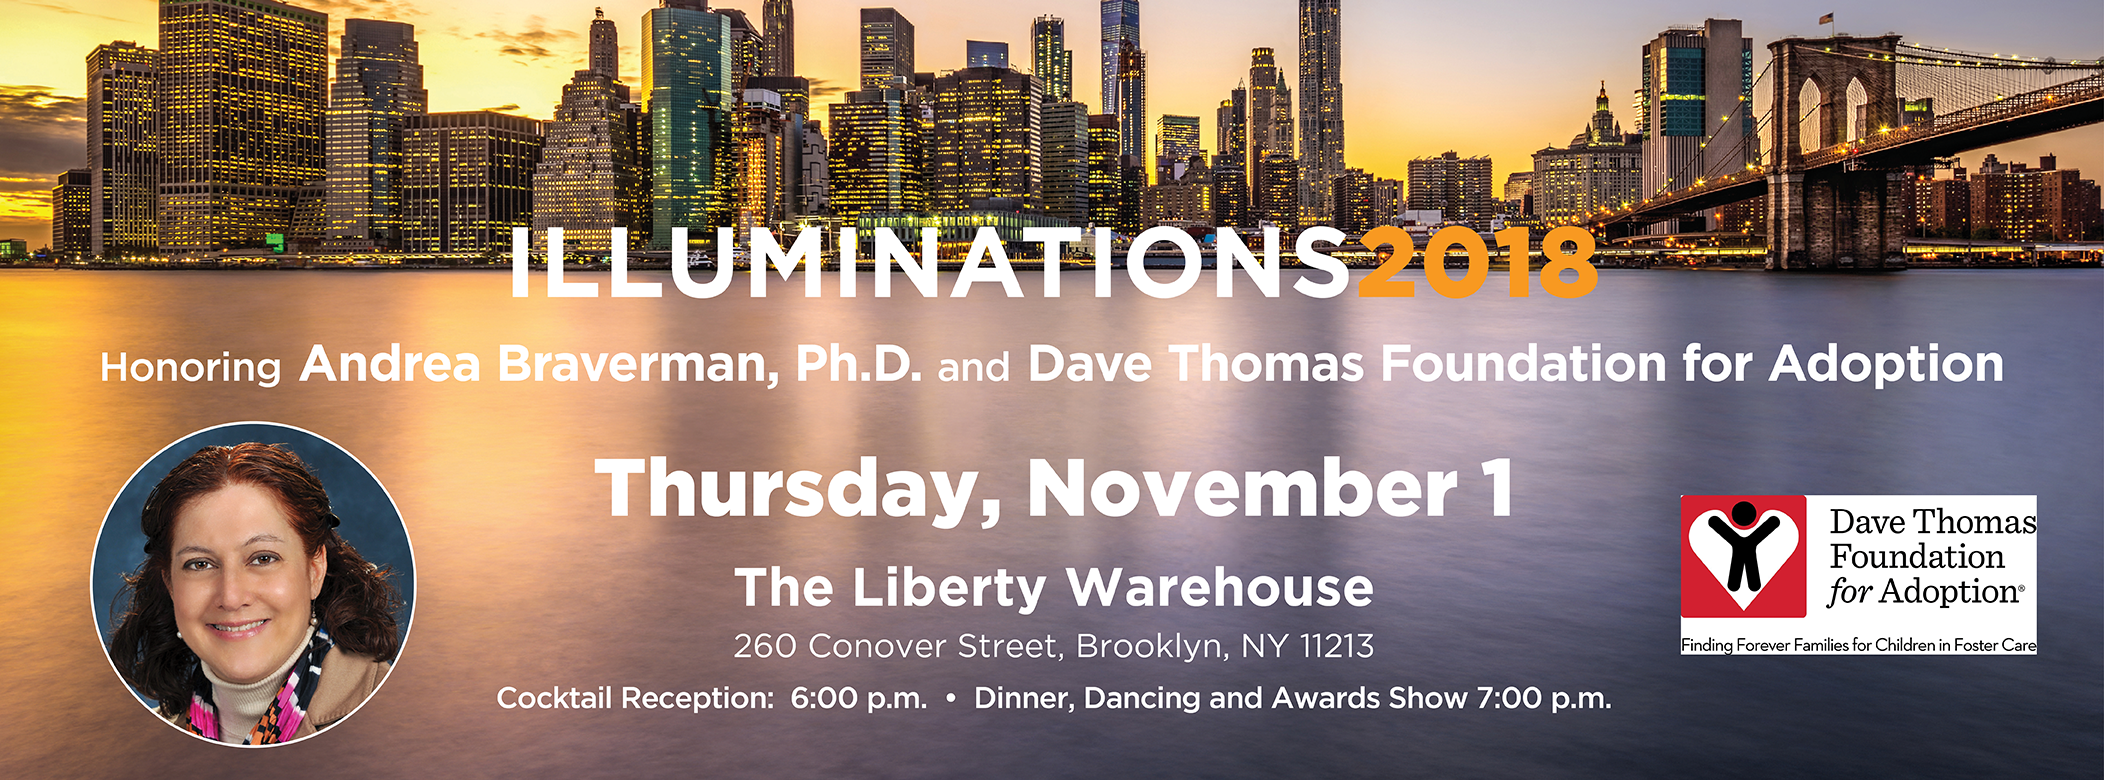 P2 P Illuminations About2018 Ny2 Web